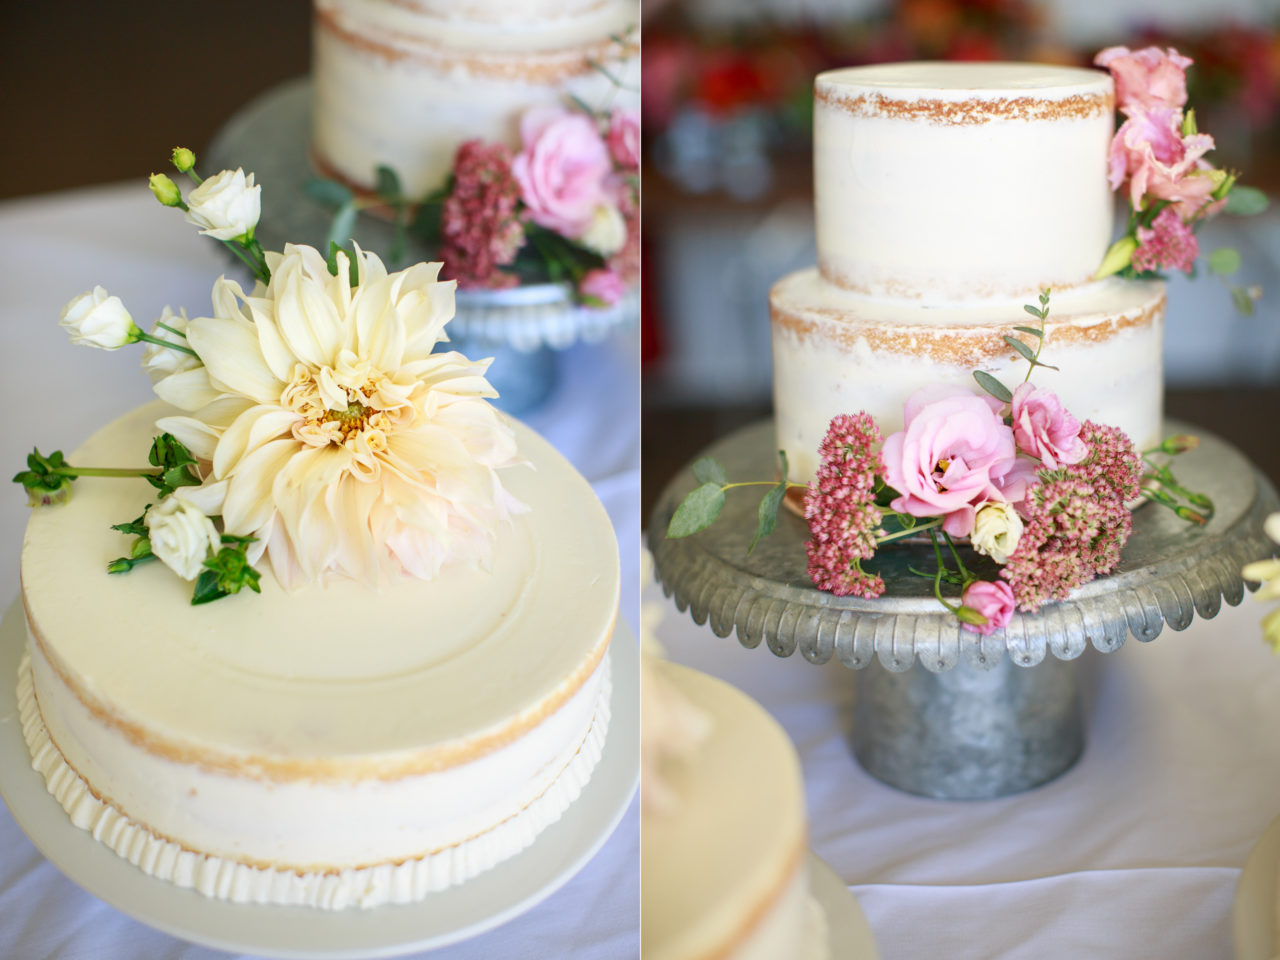 homemade wedding cakes